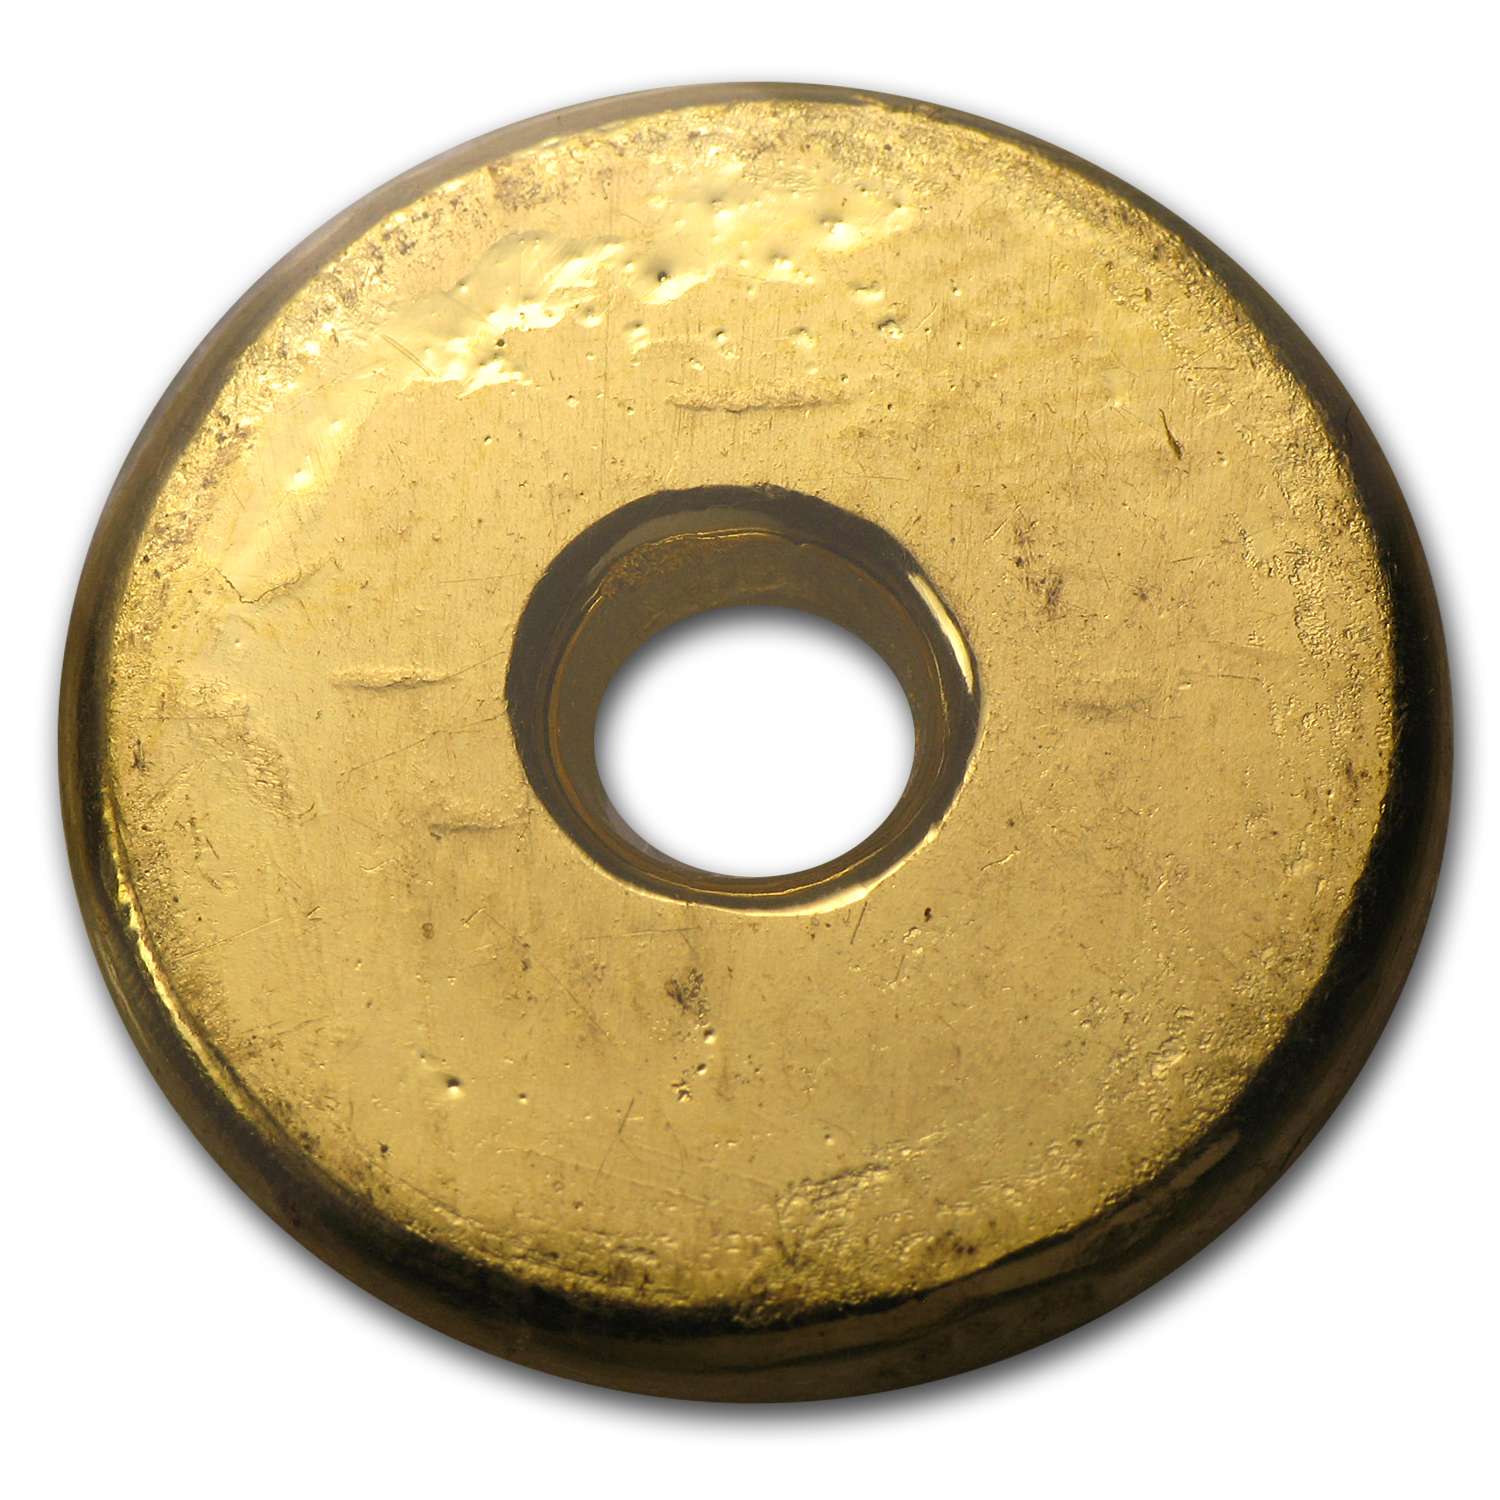 1 Tael Gold Rounds - Chinese Button (Type 2, 1.2057 oz)